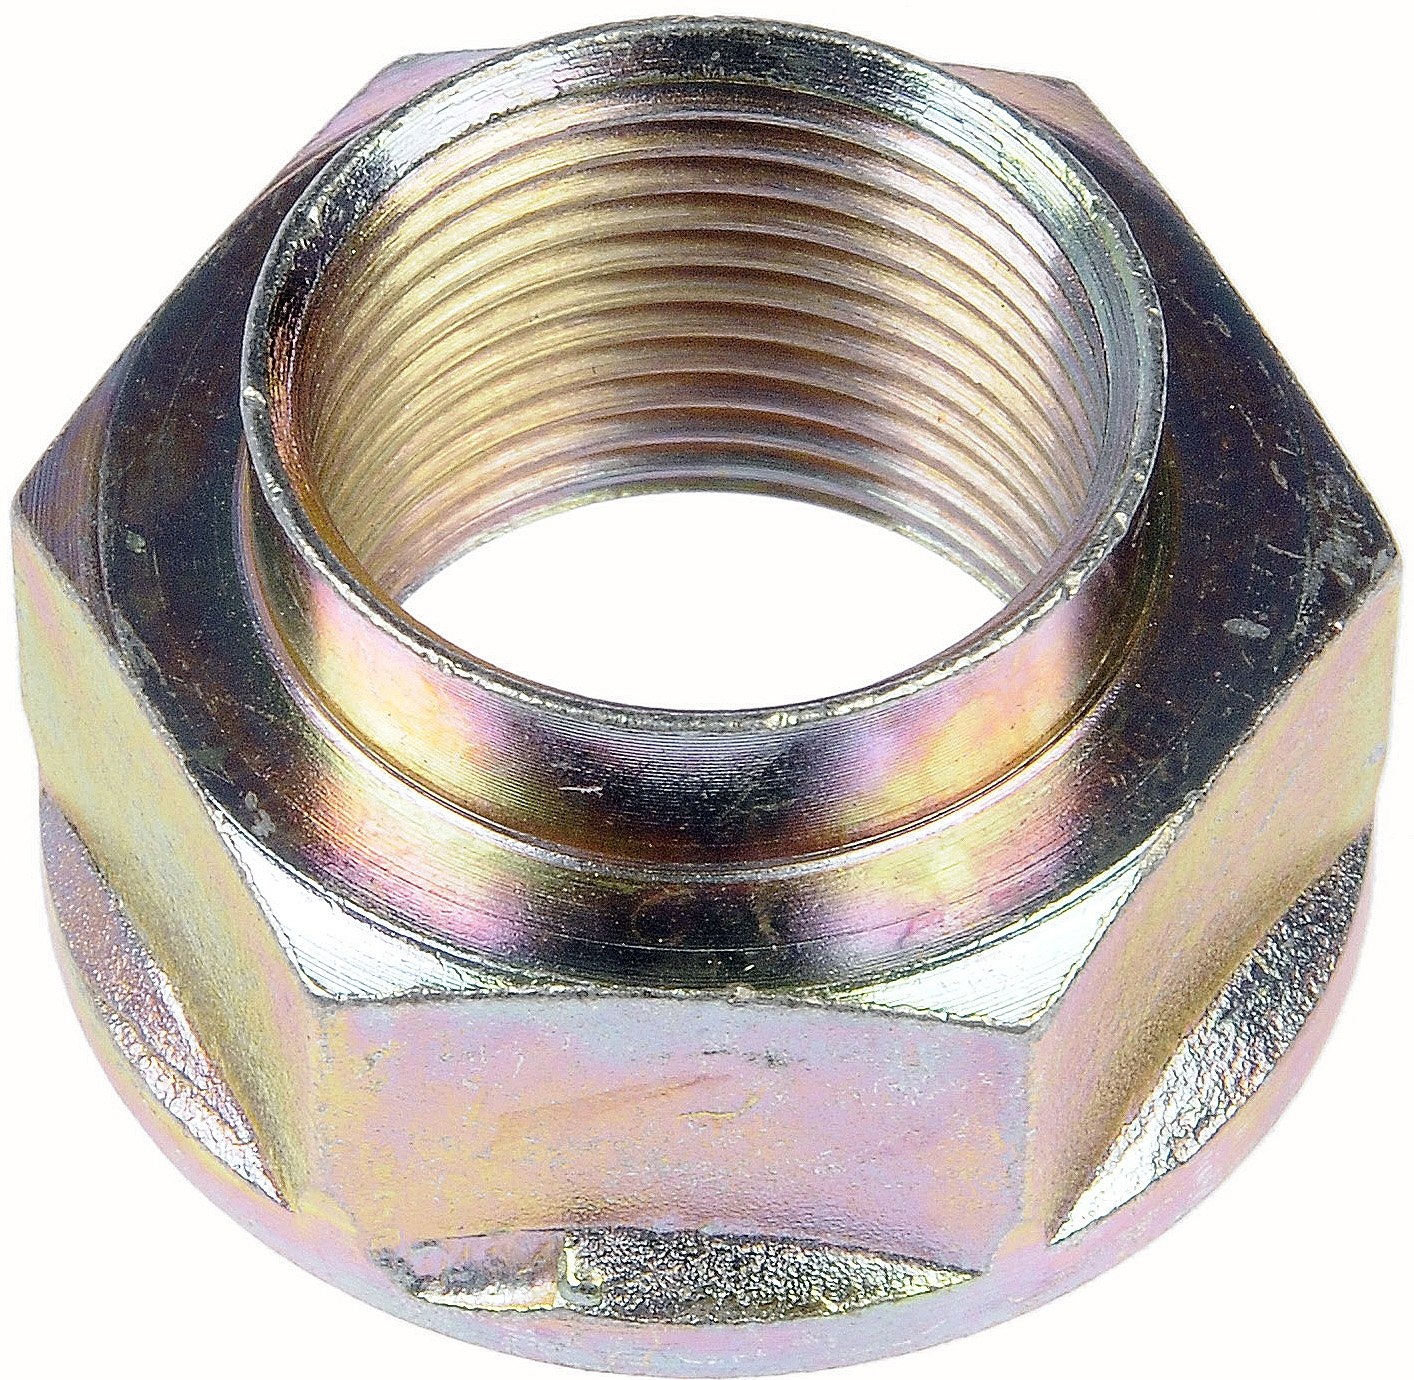 Dorman HELP! 05172 Spindle Lock Nut Kit Dorman - Autograde